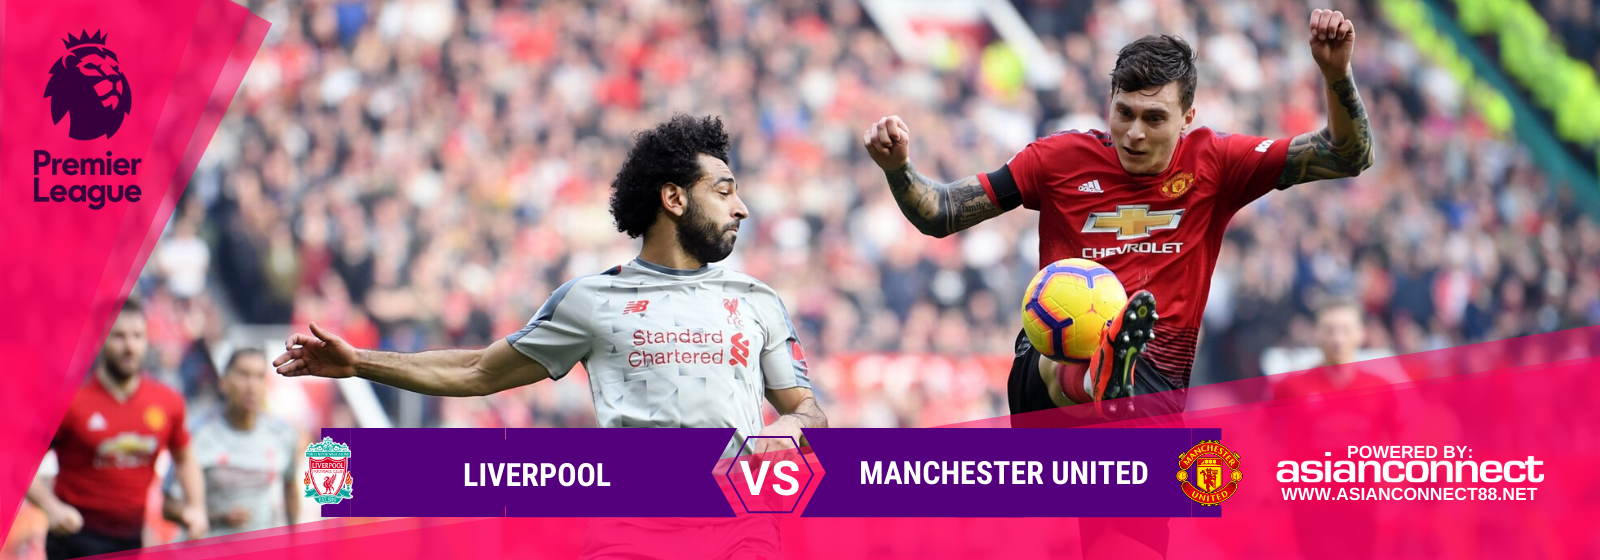 Asianconnect: Liverpool vs Manchester United Odds for January 19, 2020